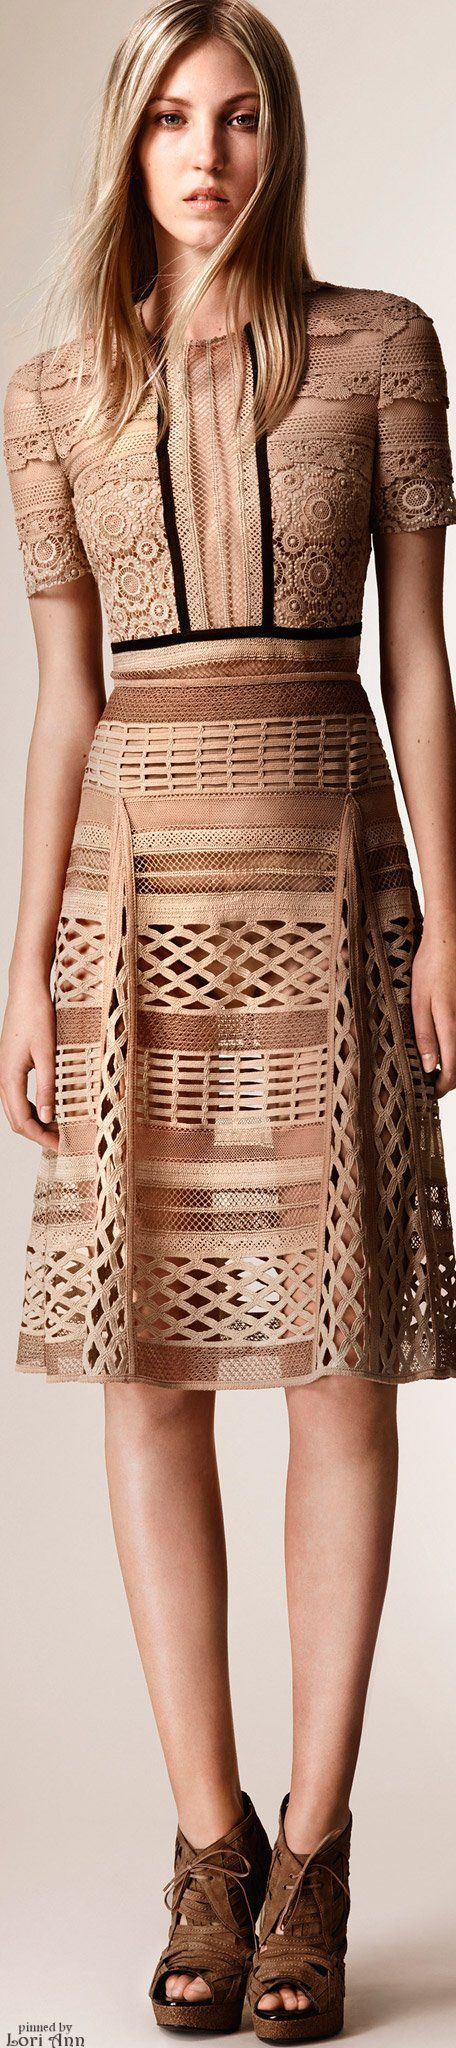 Burberry Prorsum Resort 2016                                                                                                                                                      More